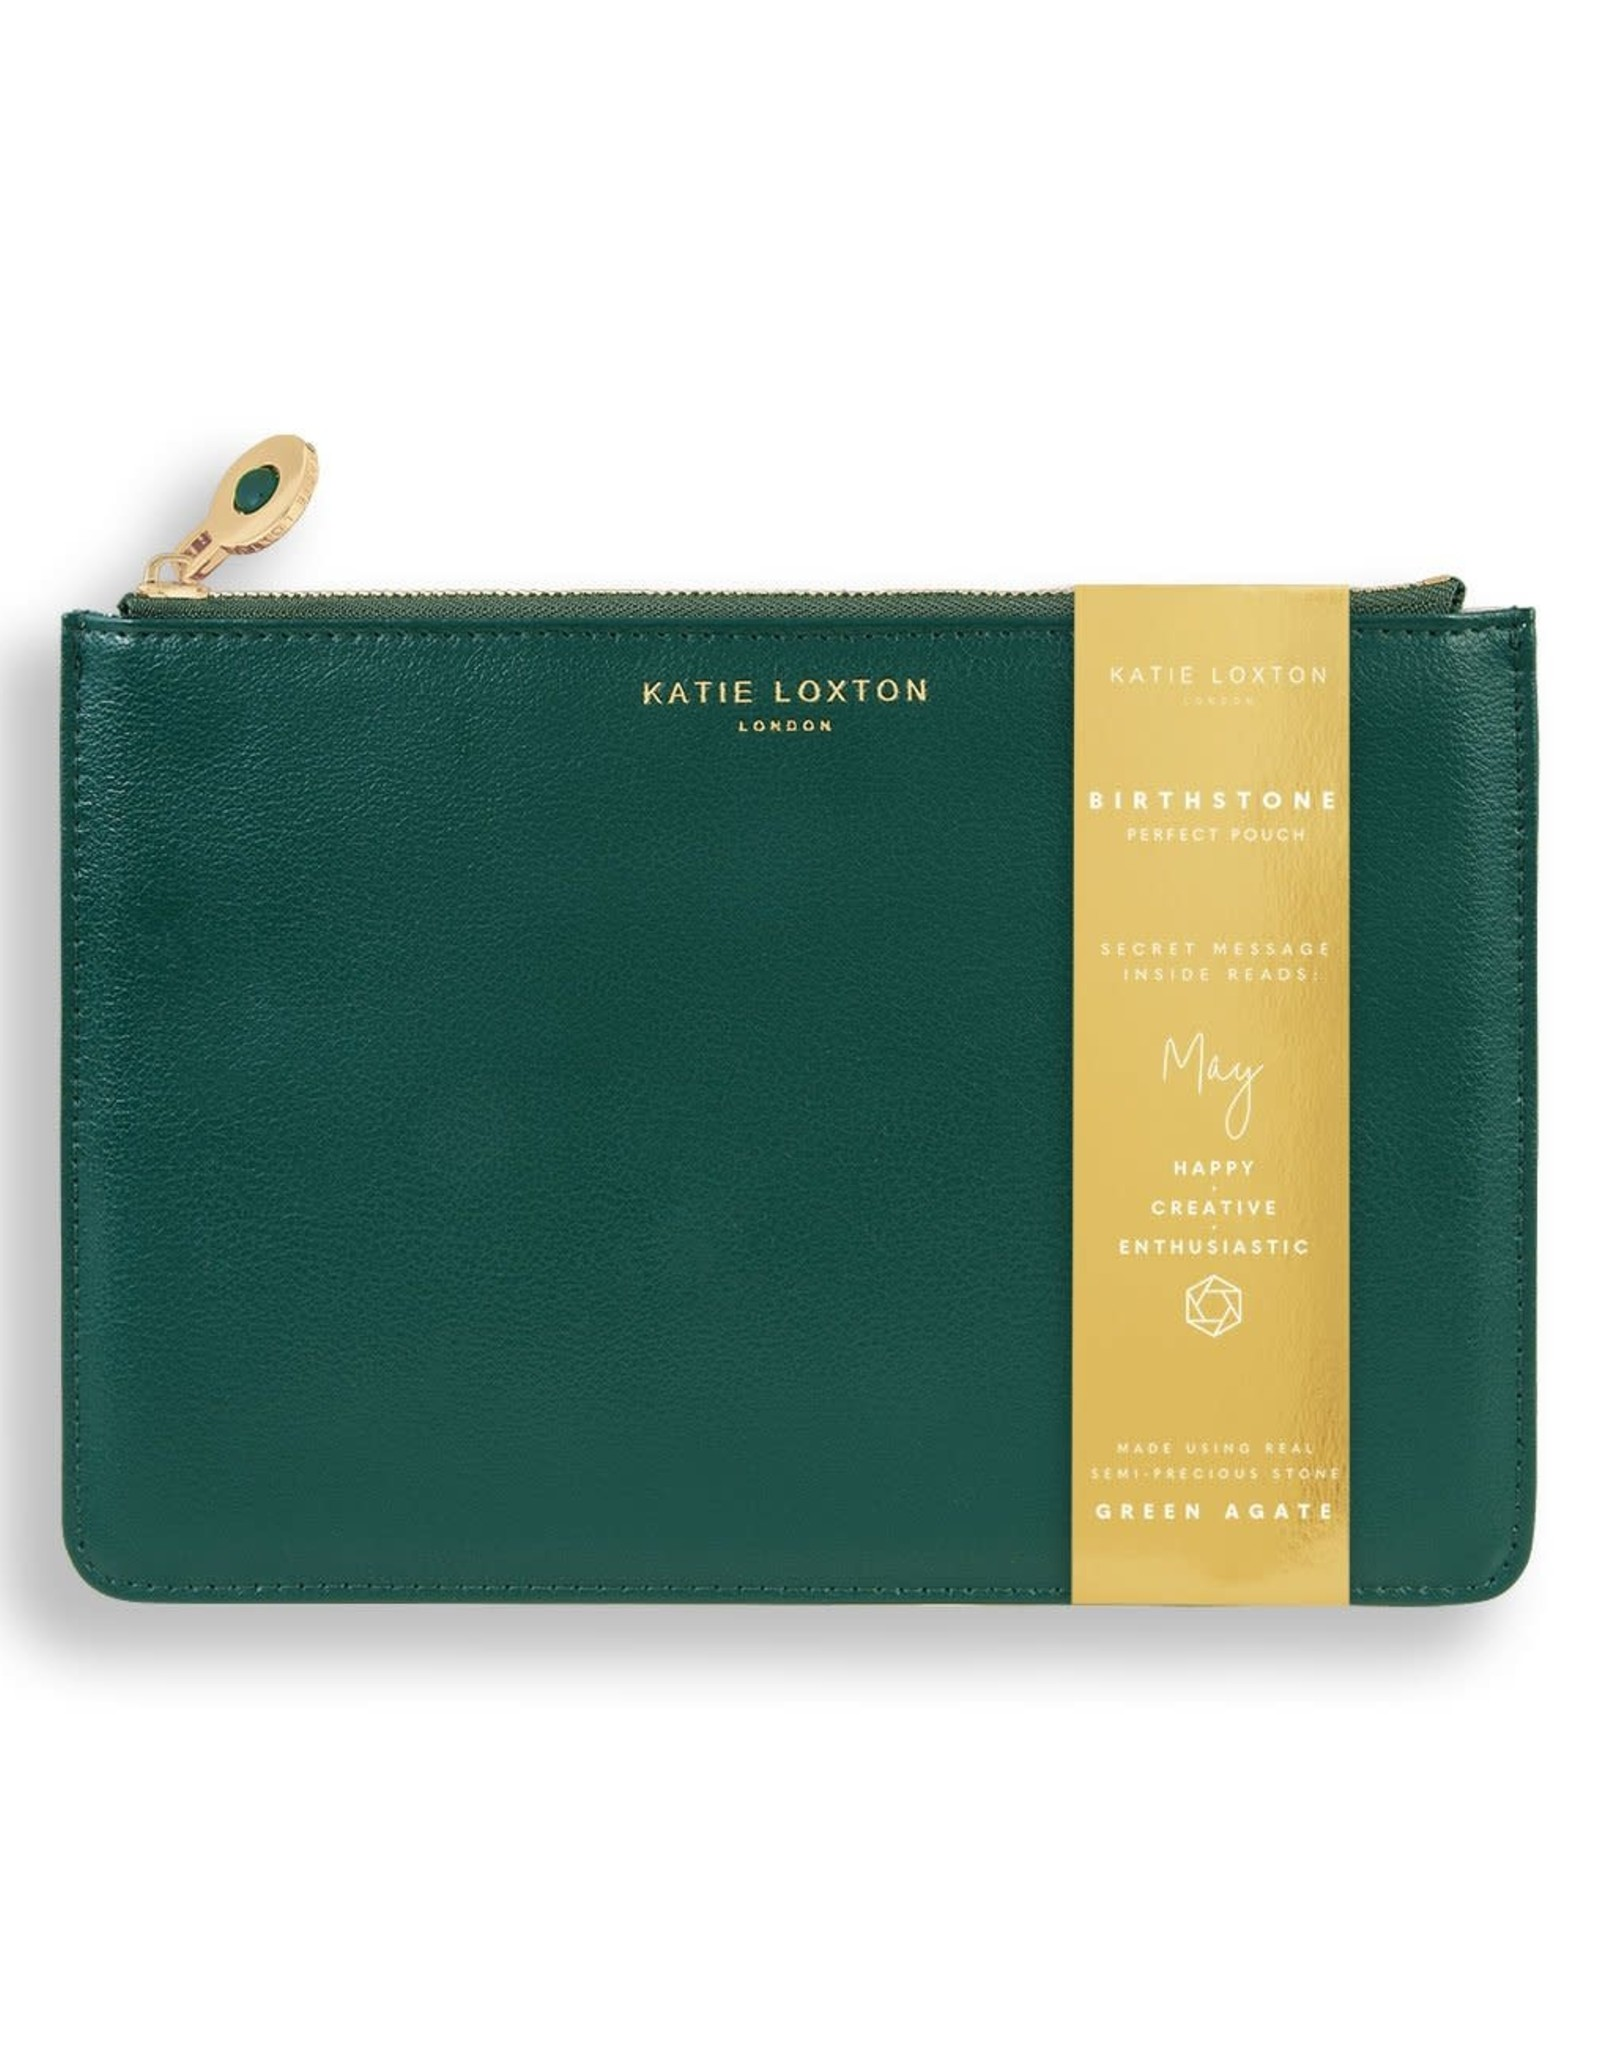 Katie Loxton The Birthstone Perfect Pouch May